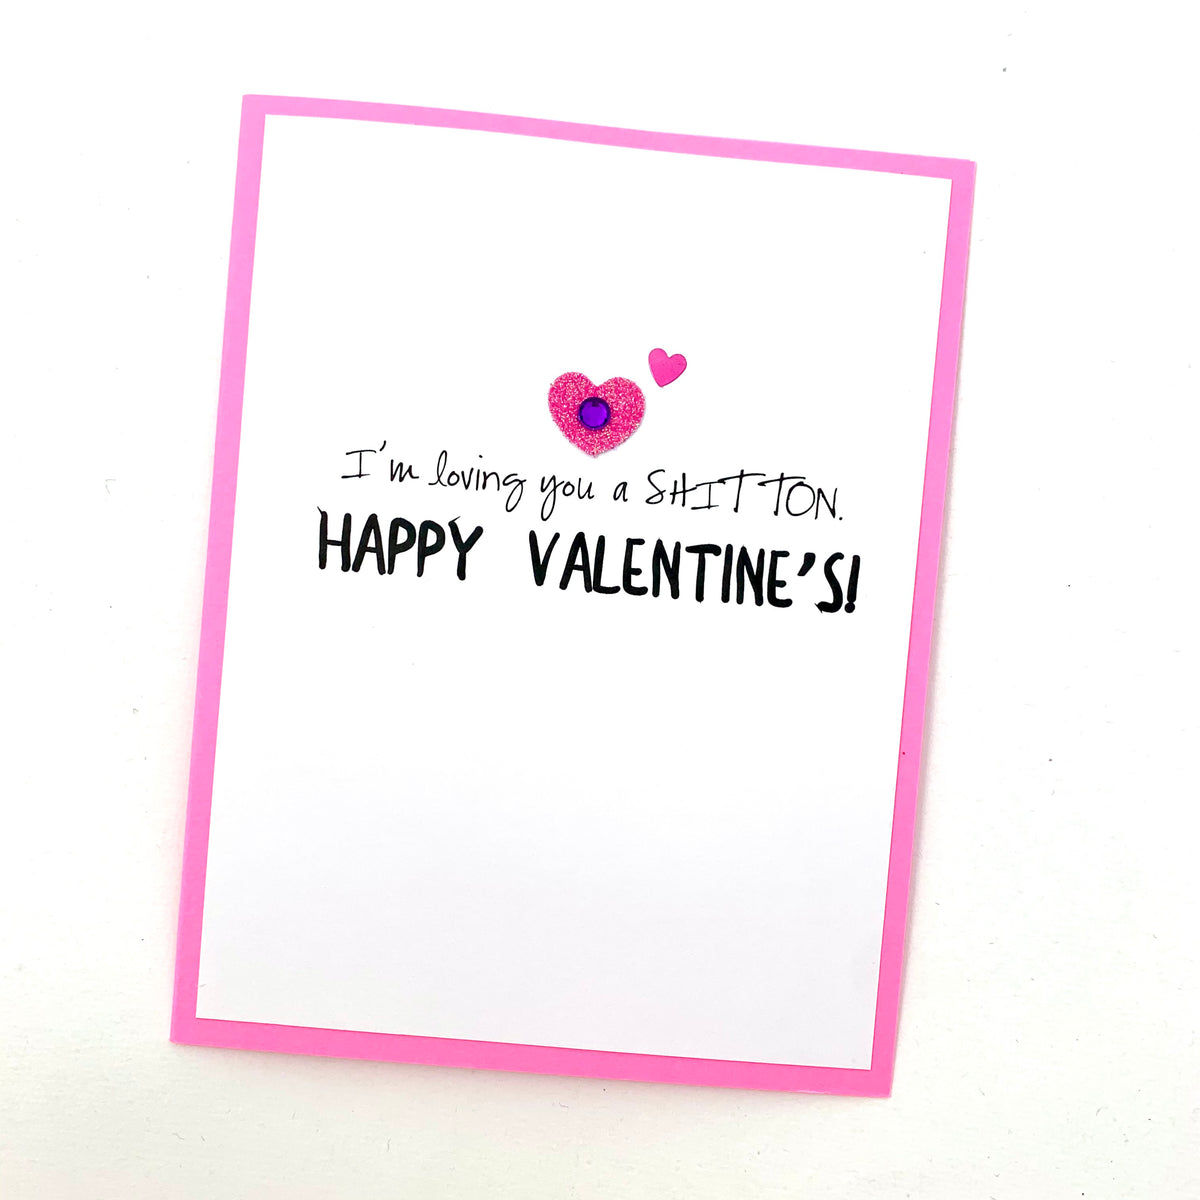 Valentine Loving You a Shit Ton card